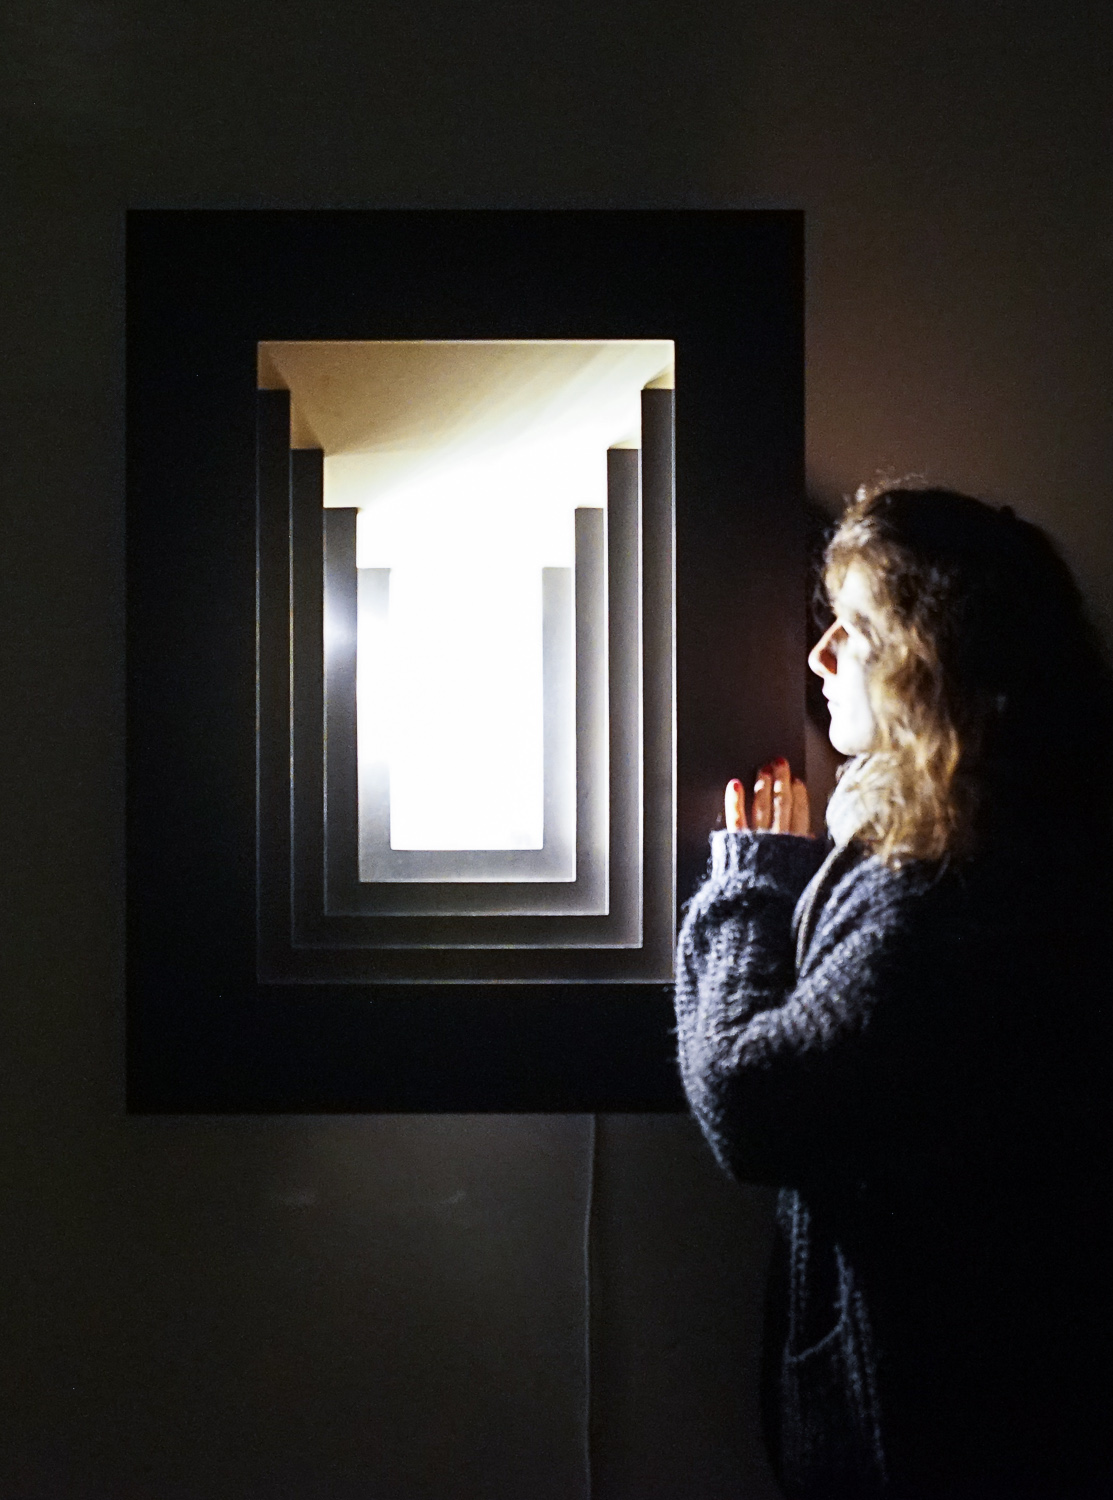 siba sahabi with her lamp perspectives